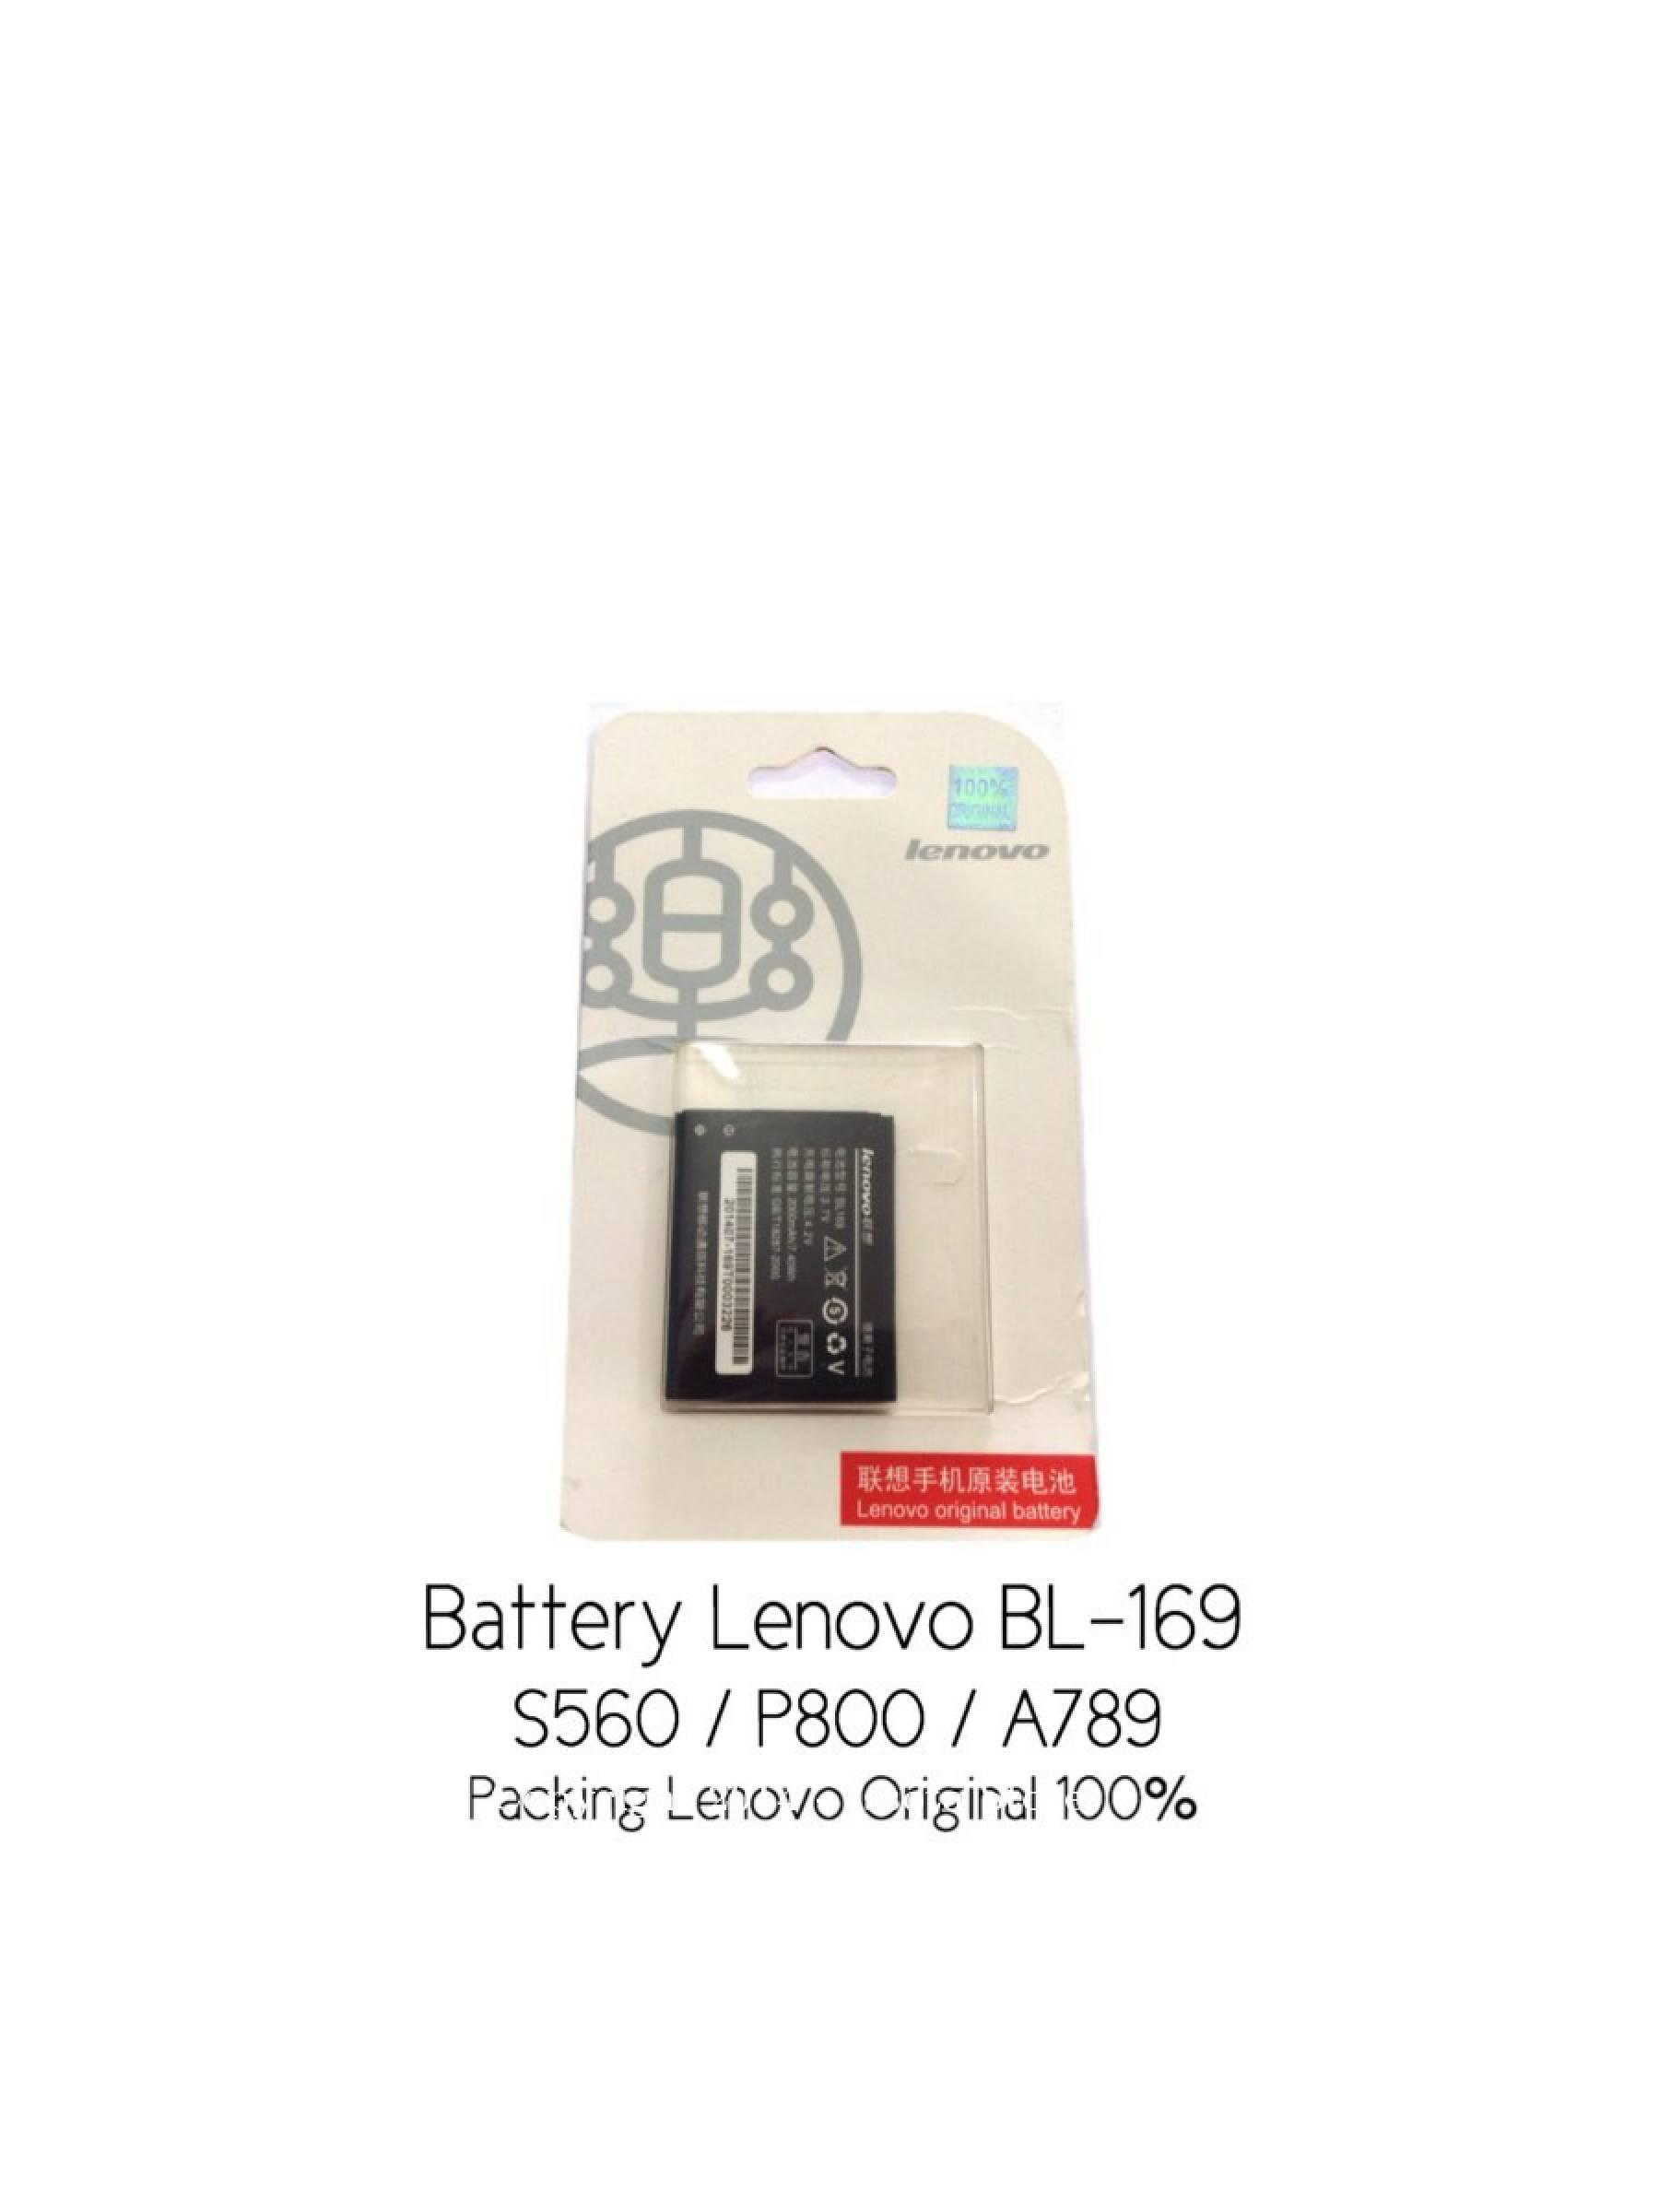 Battery Lenovo BL-169 S560 / P800 / A789 Original 100%